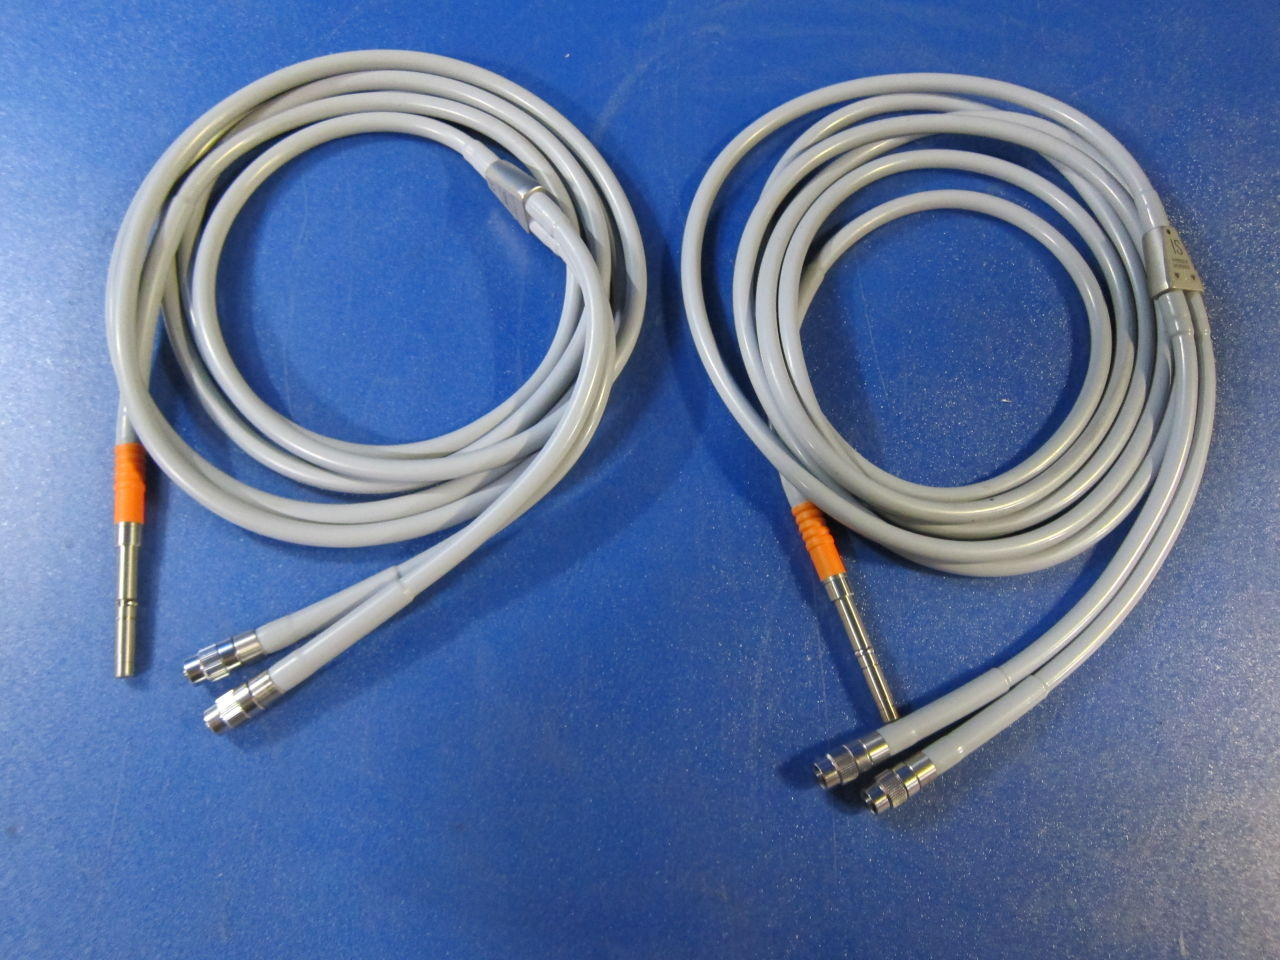 SCHOELLY PN#: 951021-01 Fiber Optic Cable - Lot of 2